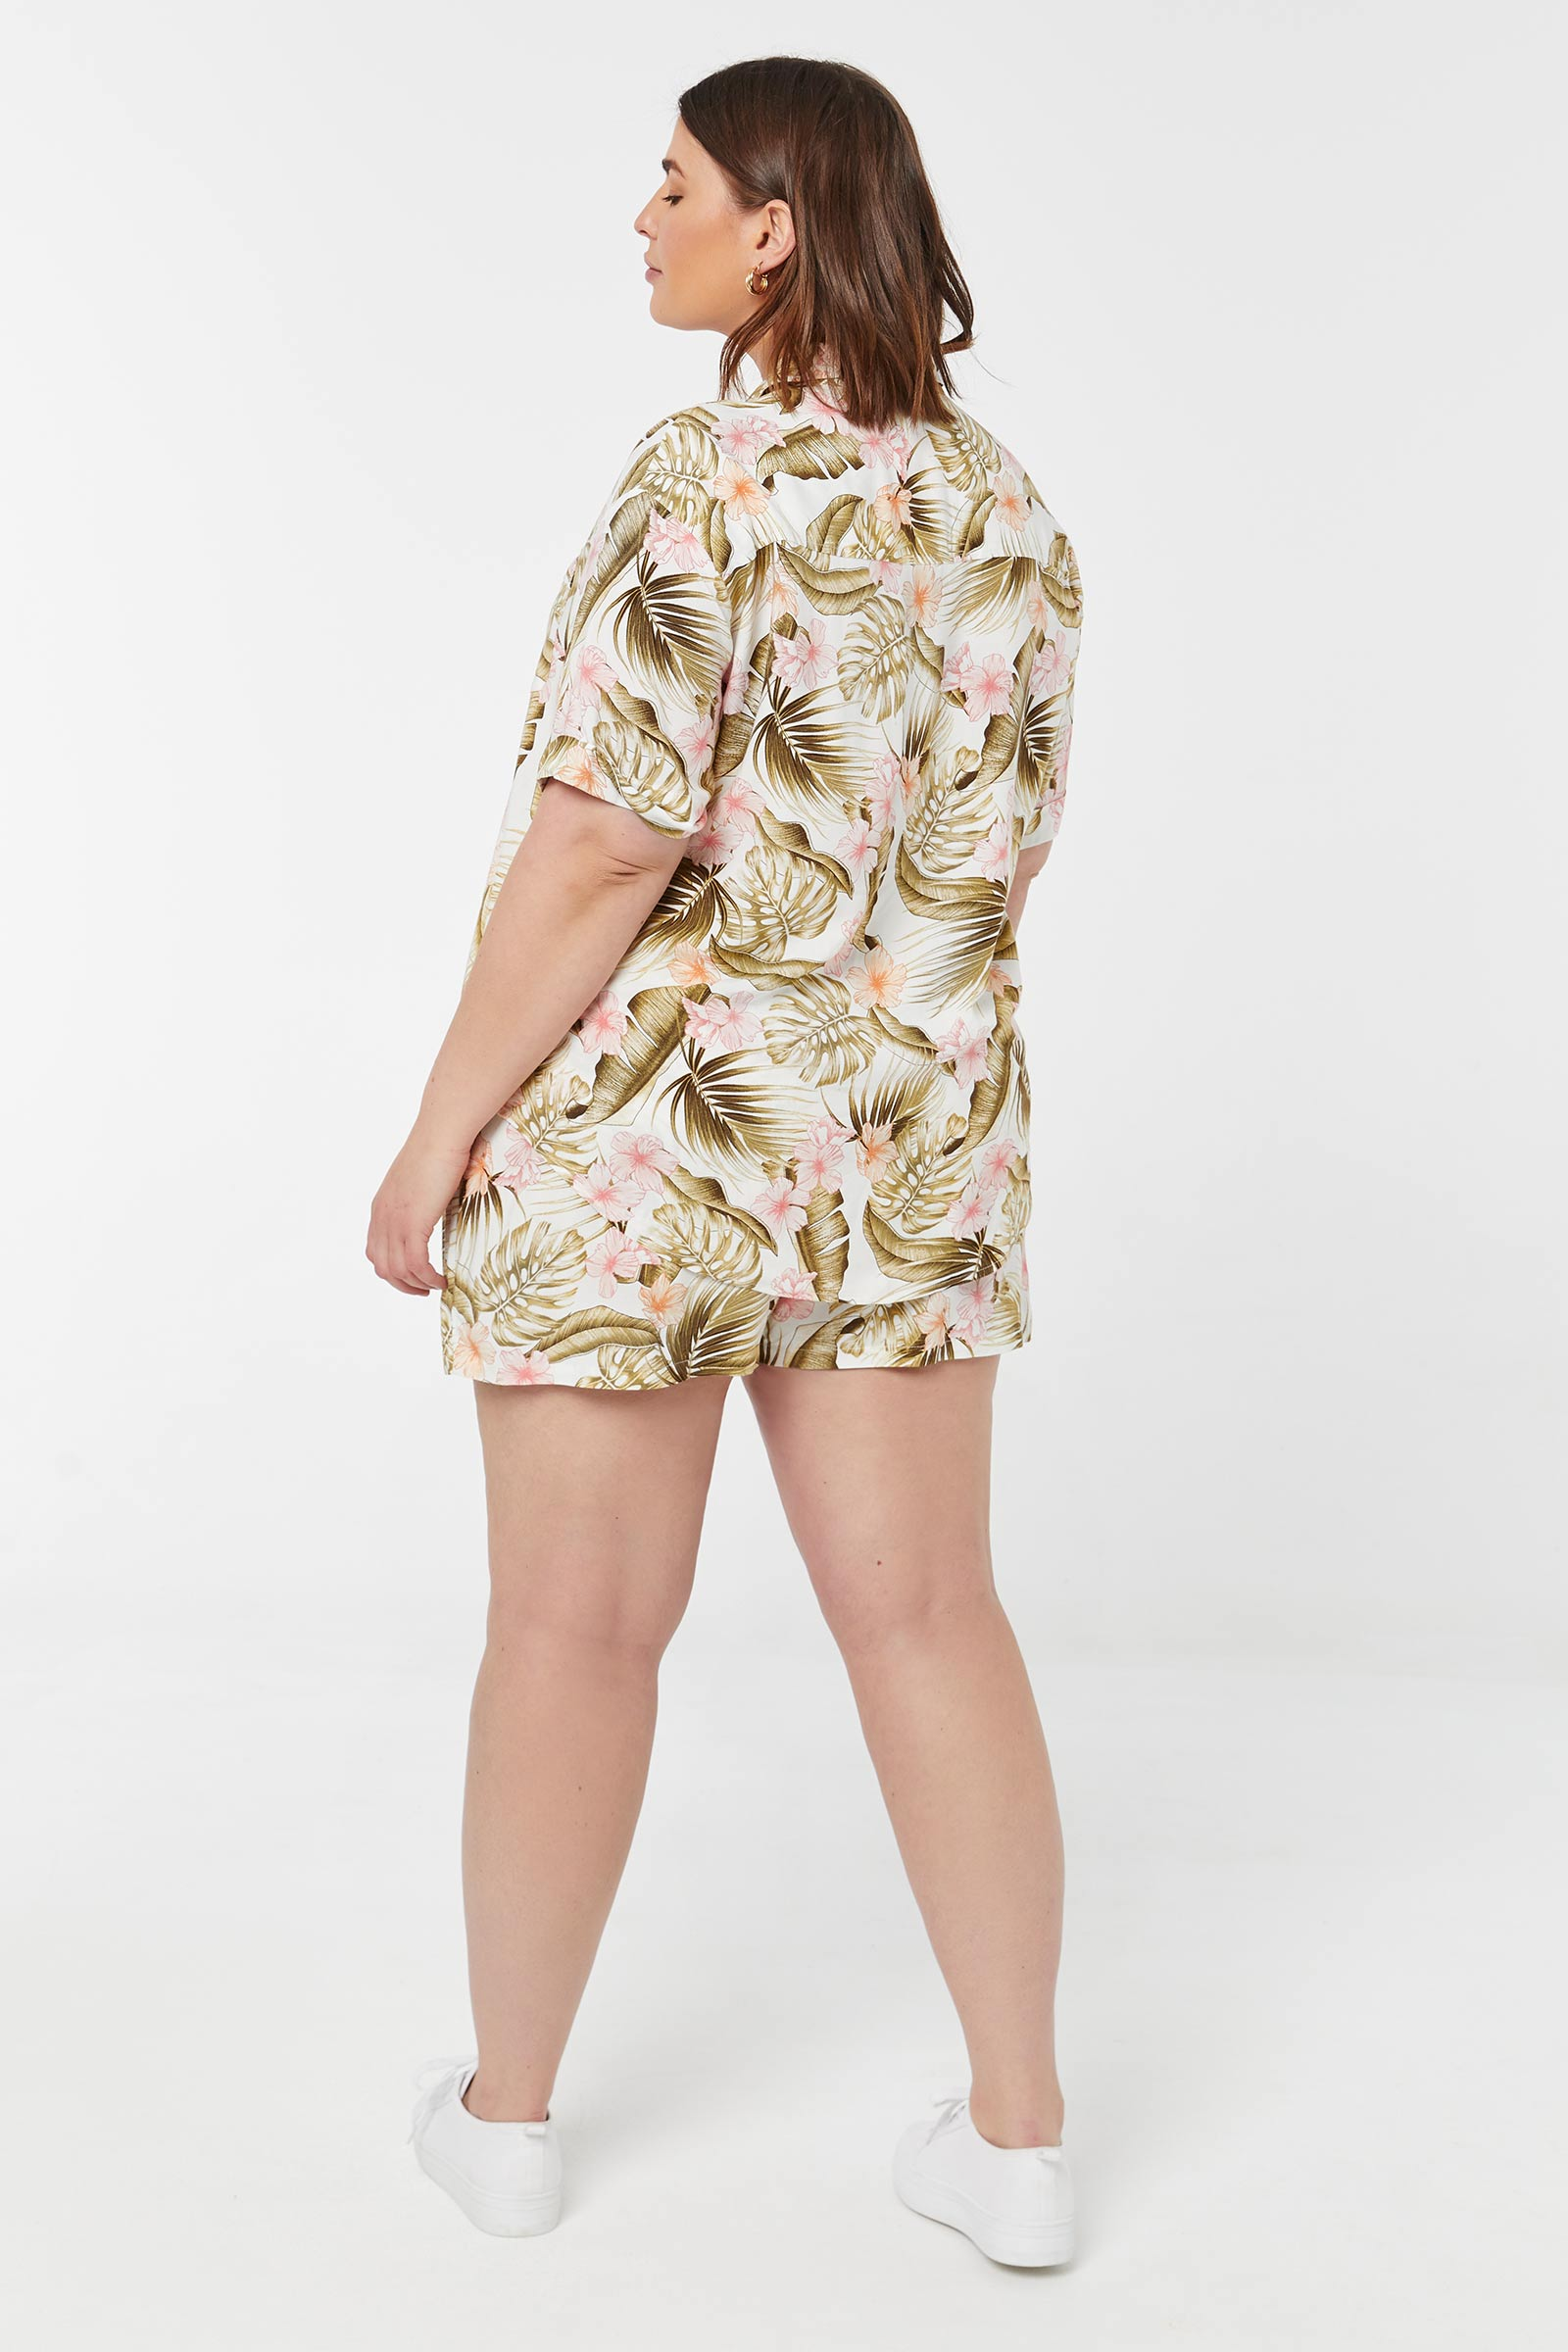 Chemise tropicale Taille Plus